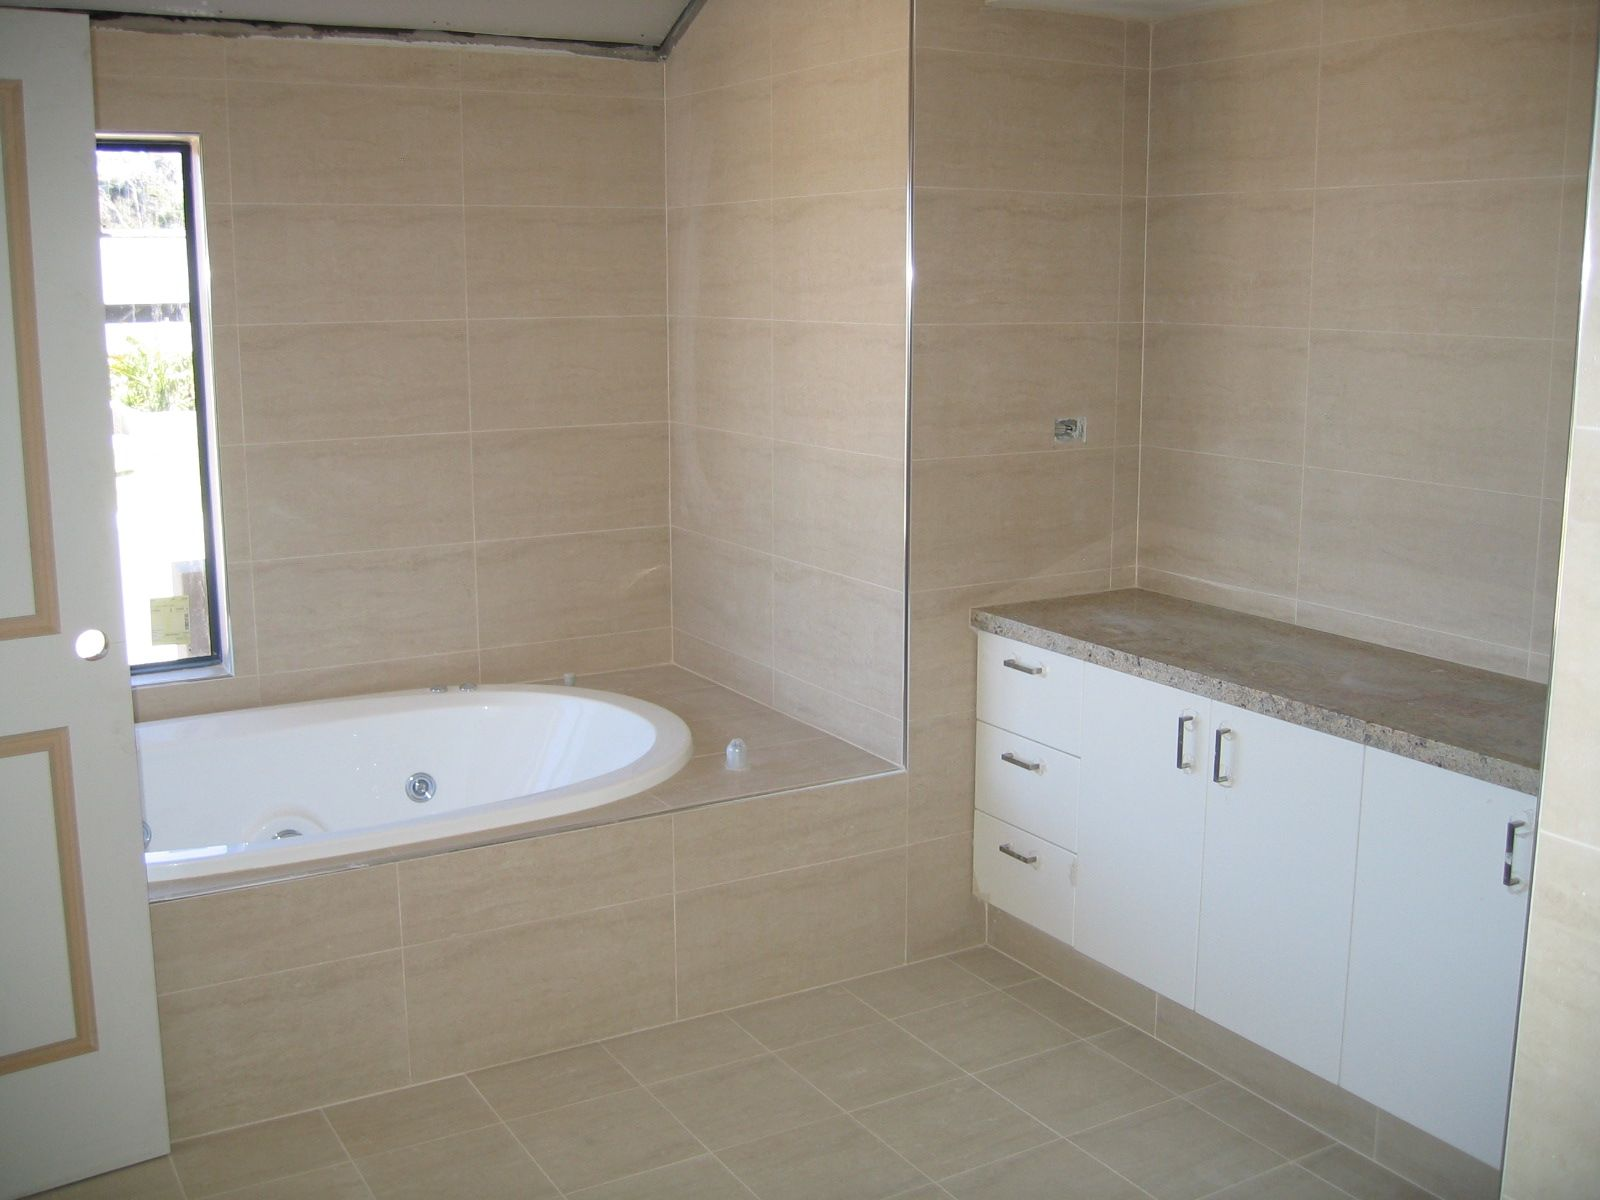 bathroom tiles height bathroom tiles mandurah tile and stone - Bathroom Tiles Height